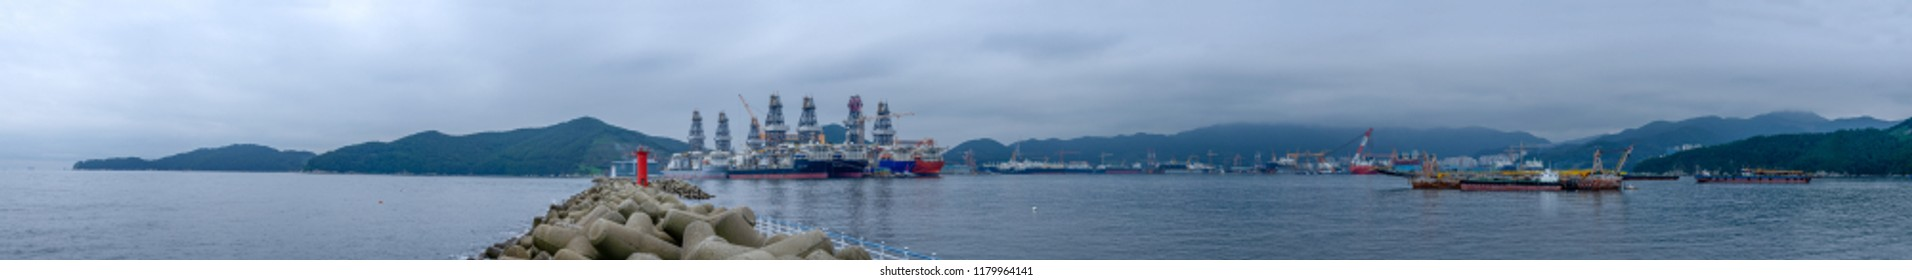 GEOJE, SOUTH KOREA - SEPTEMBER 15, 2018: Bay of Daewoo Shipbuilding and Marine Engineering (DSME) in Okpo with wave breaking, marine engineering facilities, ships and offshore platforms in the evening